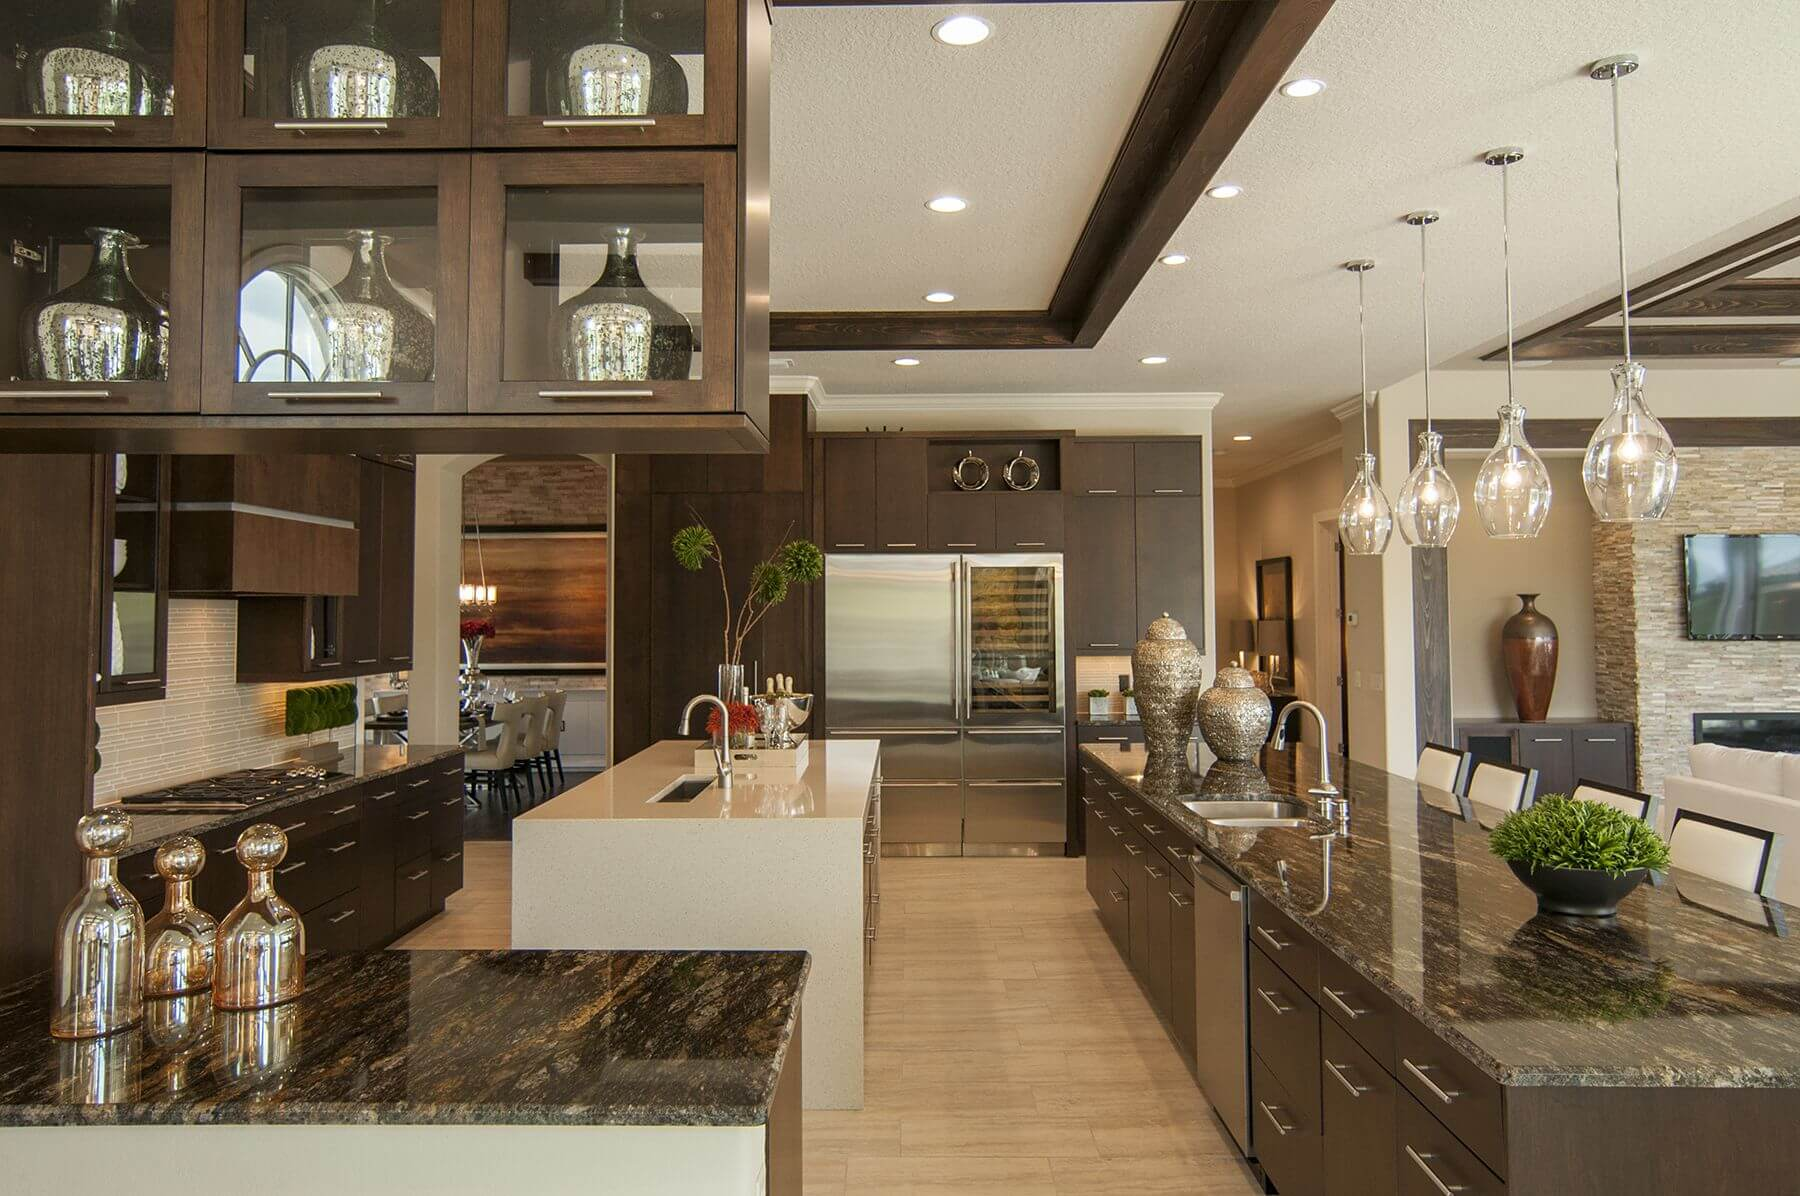 Dark Kitchens With Dark Wood OR Black Kitchen Cabinets - Light brown kitchen cabinets wall color